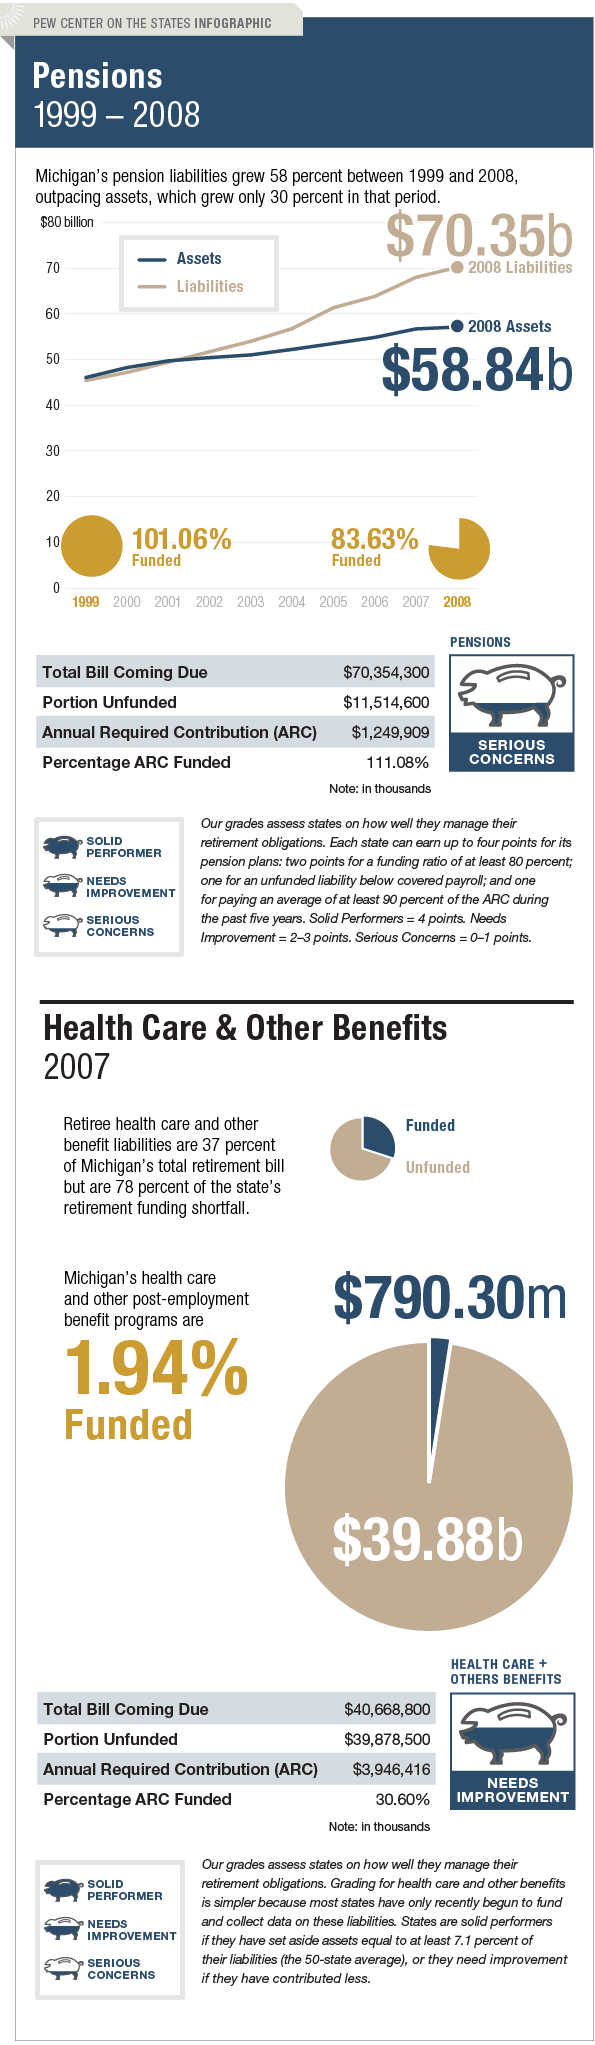 The Trillion Dollar Gap Michigan Pension Funding